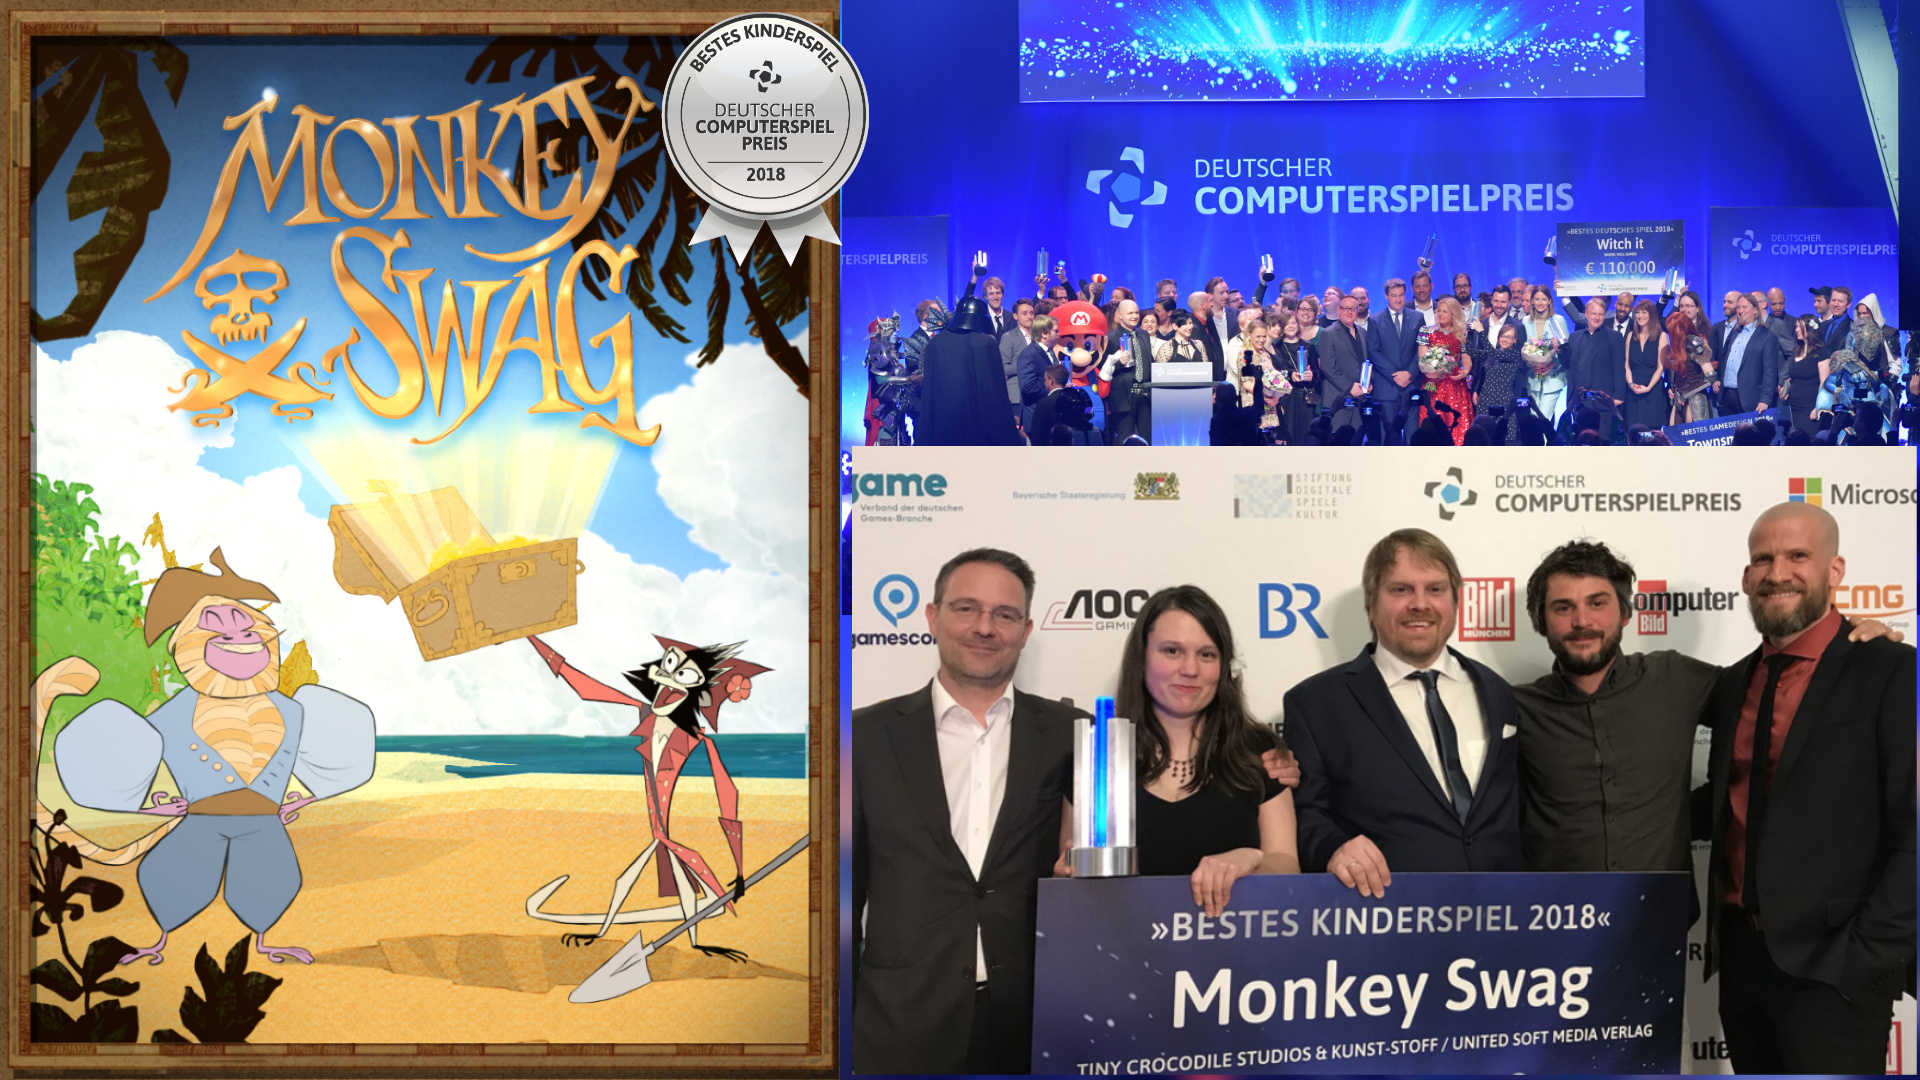 Packshot of the game Monkey Swag and a photograph of the team winnind the german computer game award for best kids game